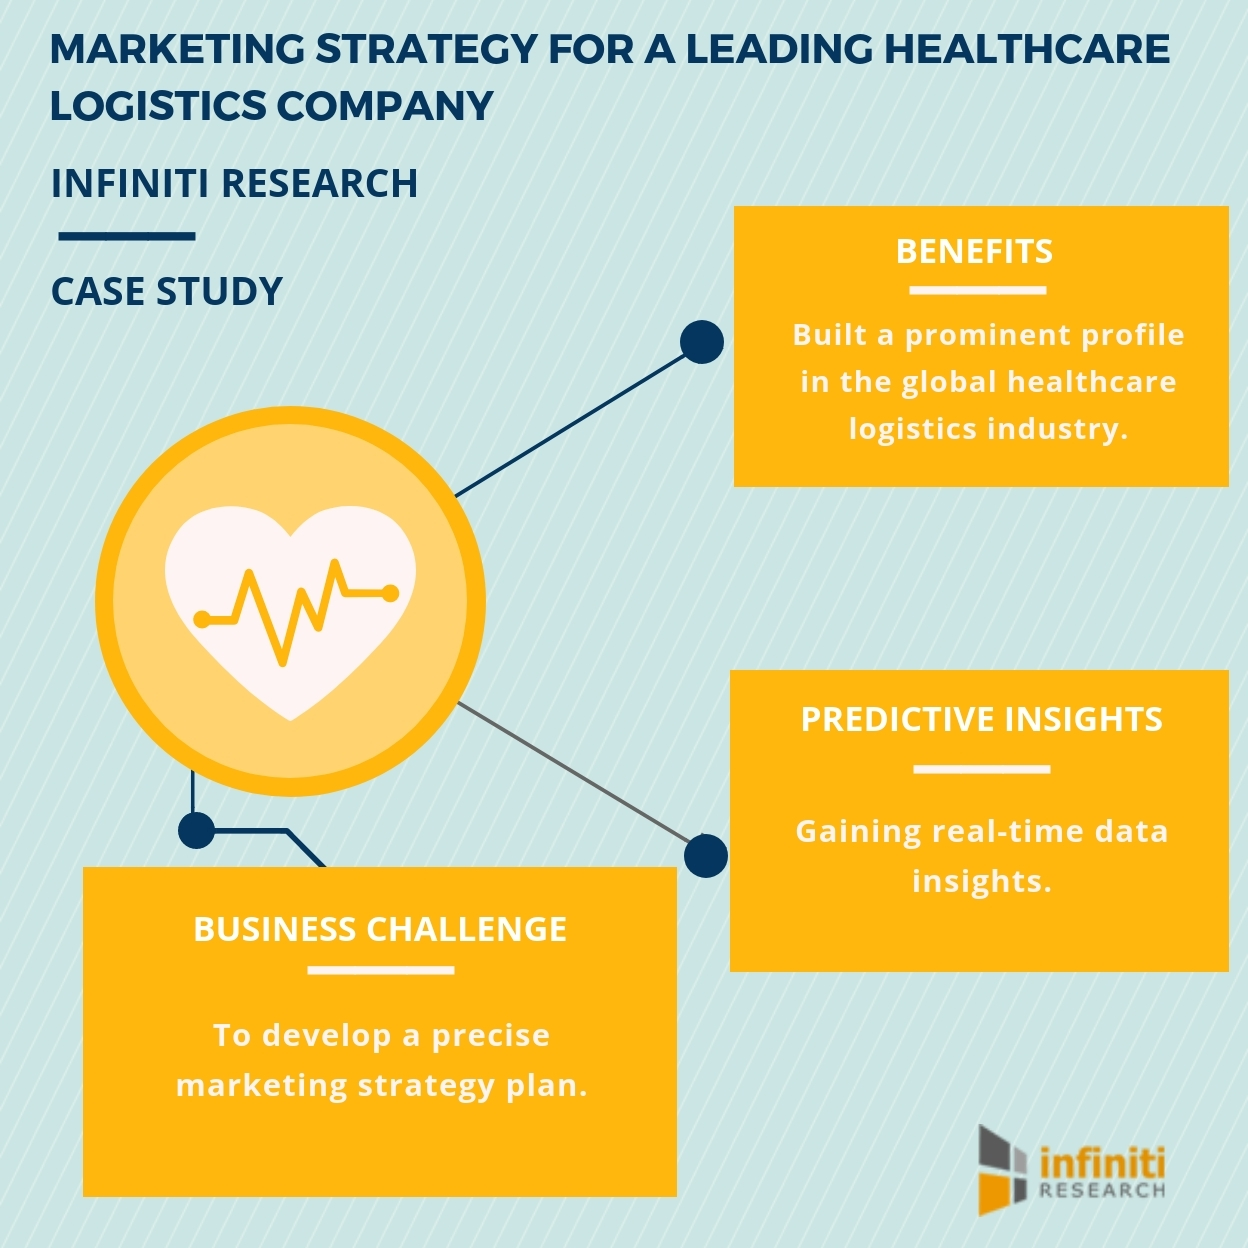 Devising a Successful Marketing Strategy Plan for a Leading